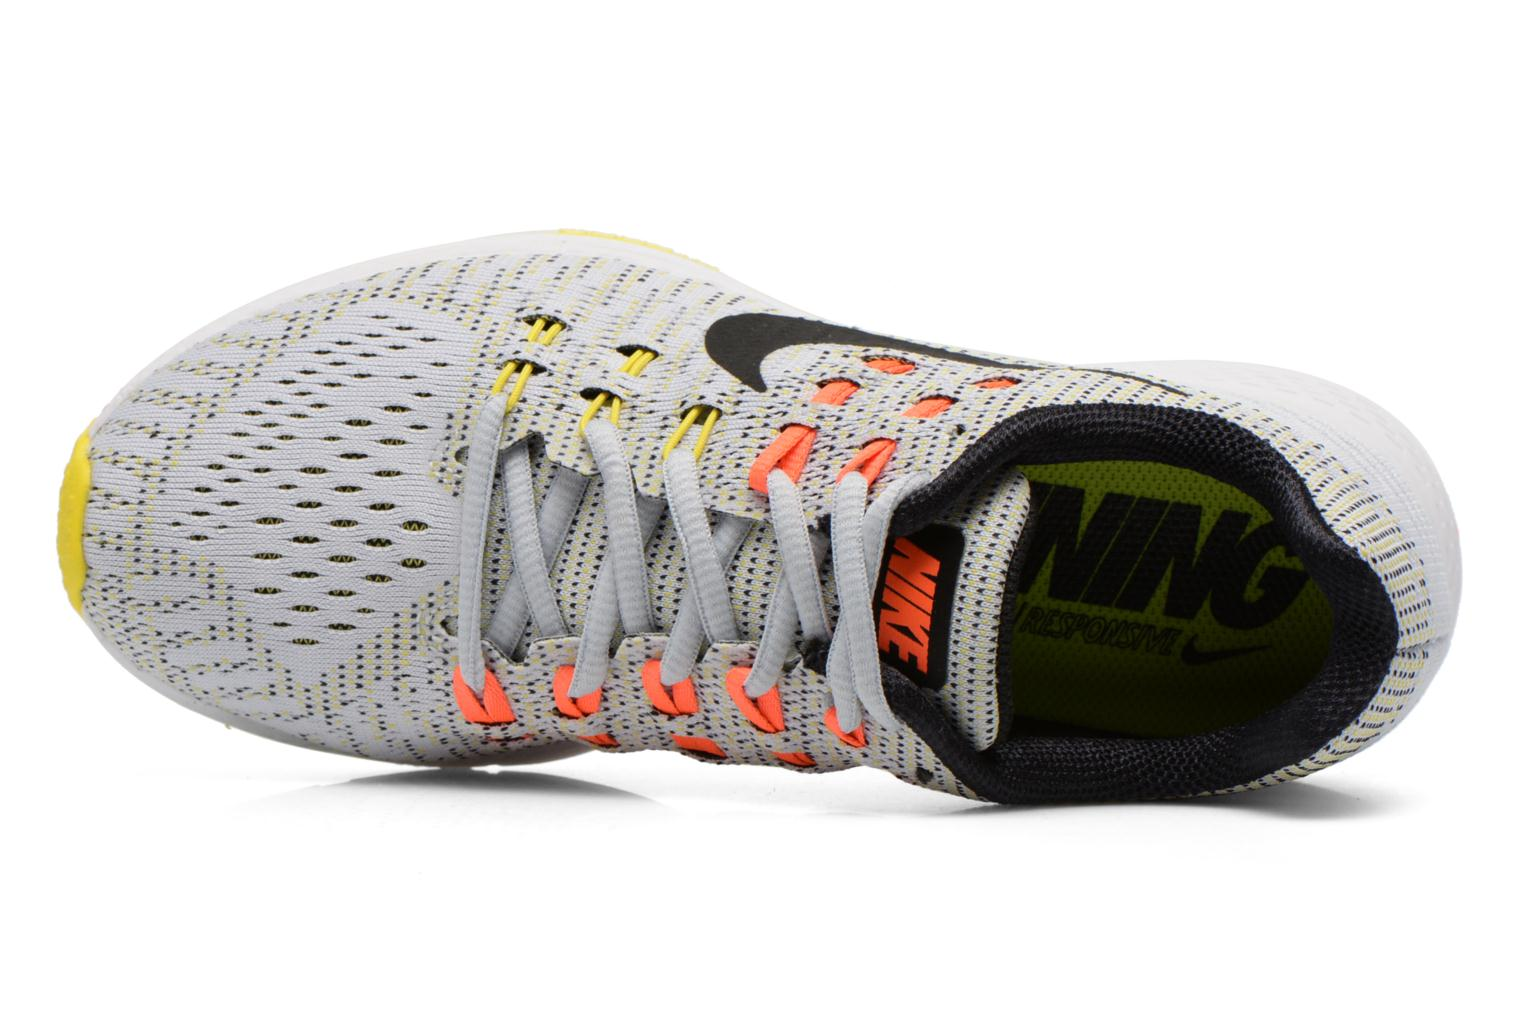 W Nike Air Zoom Structure 19 Pr Pltnm/Blk-Opt Yllw-Hypr Orn